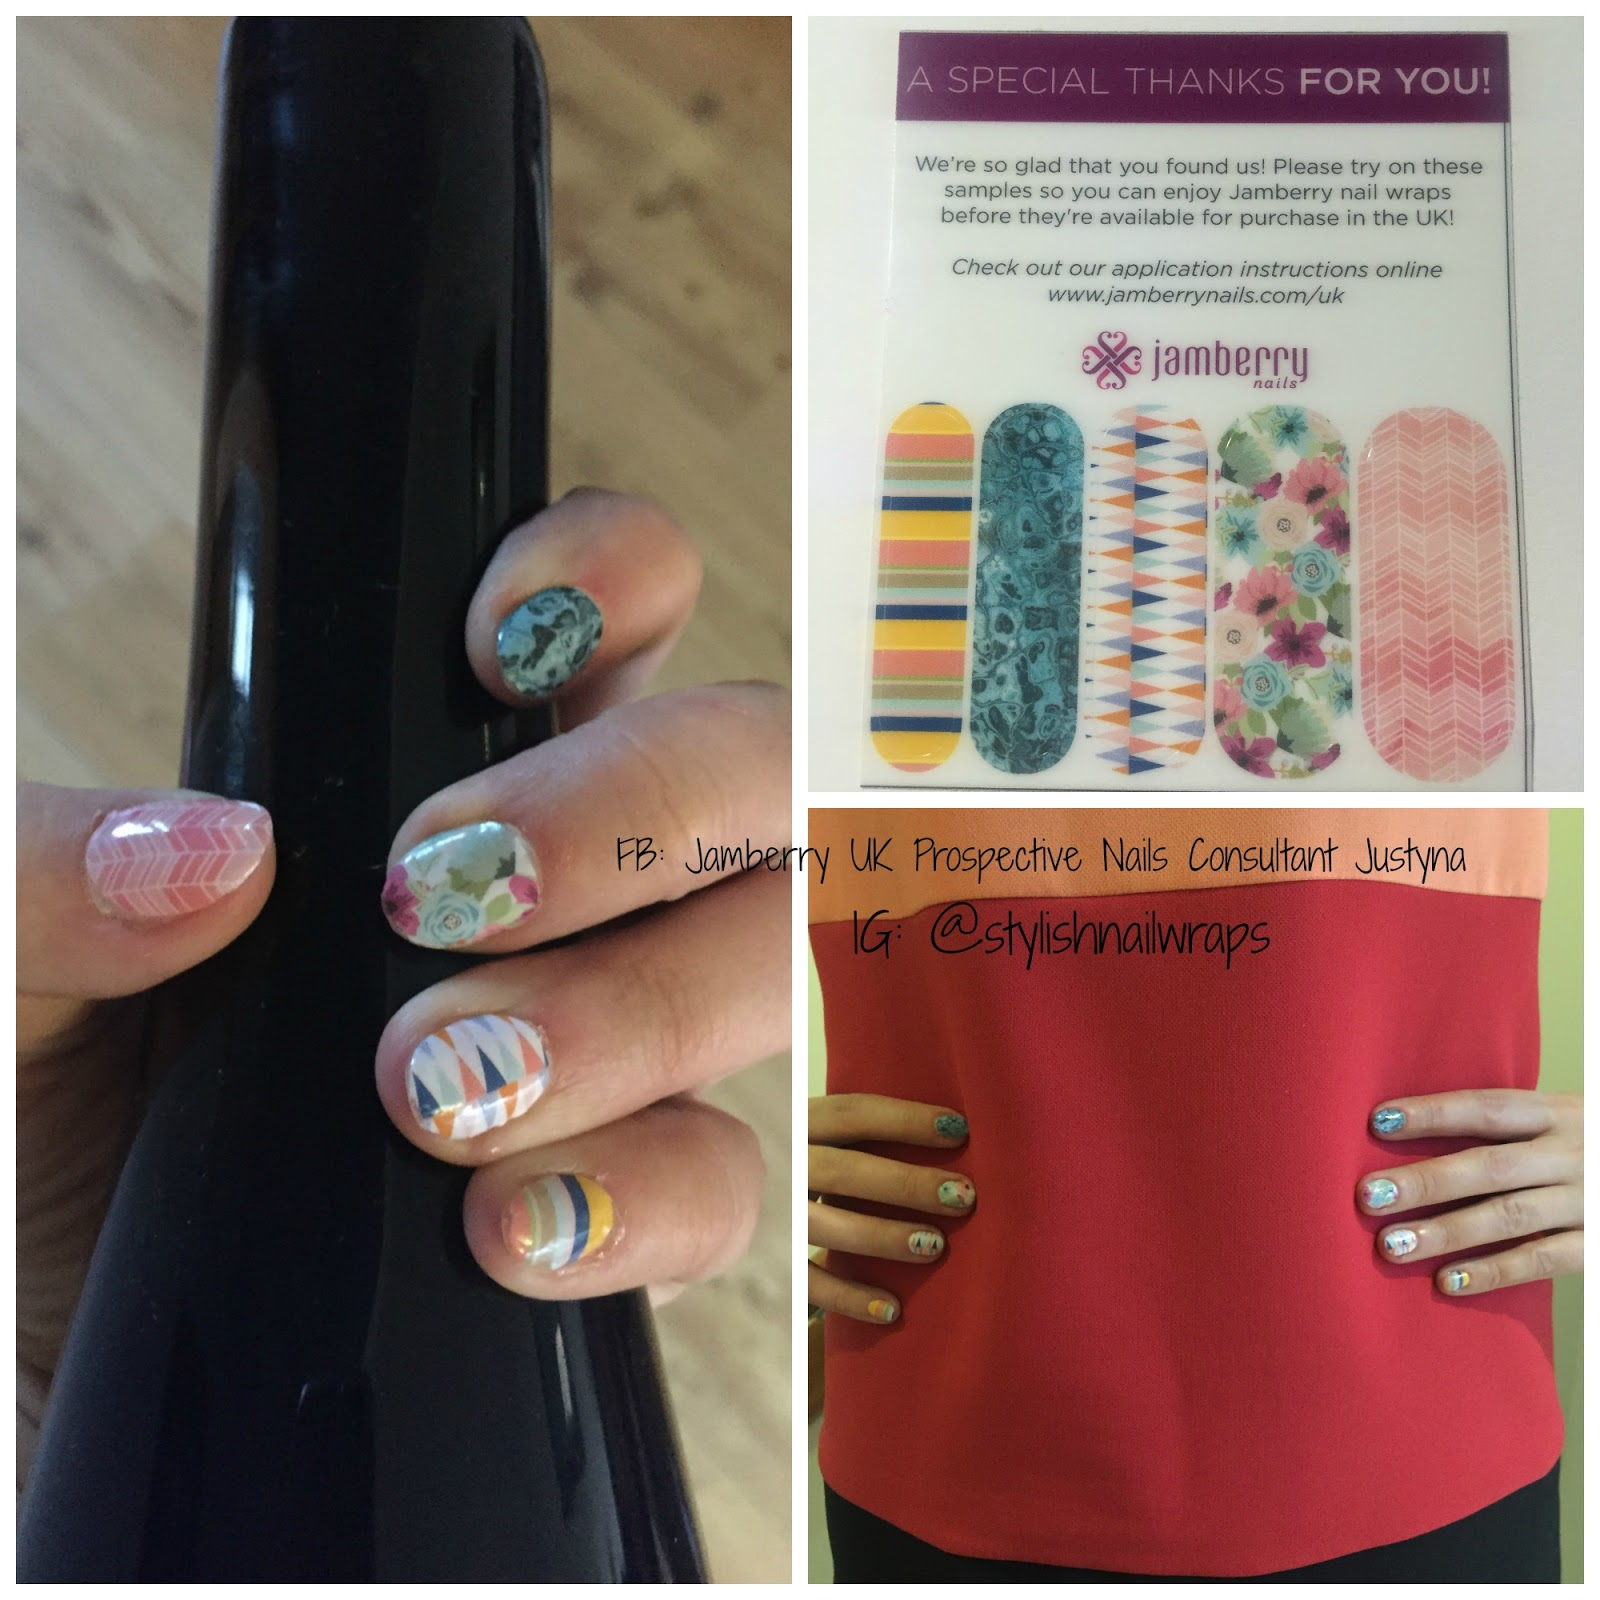 Stylish Nail Wraps, Jamberry Independent Consultant